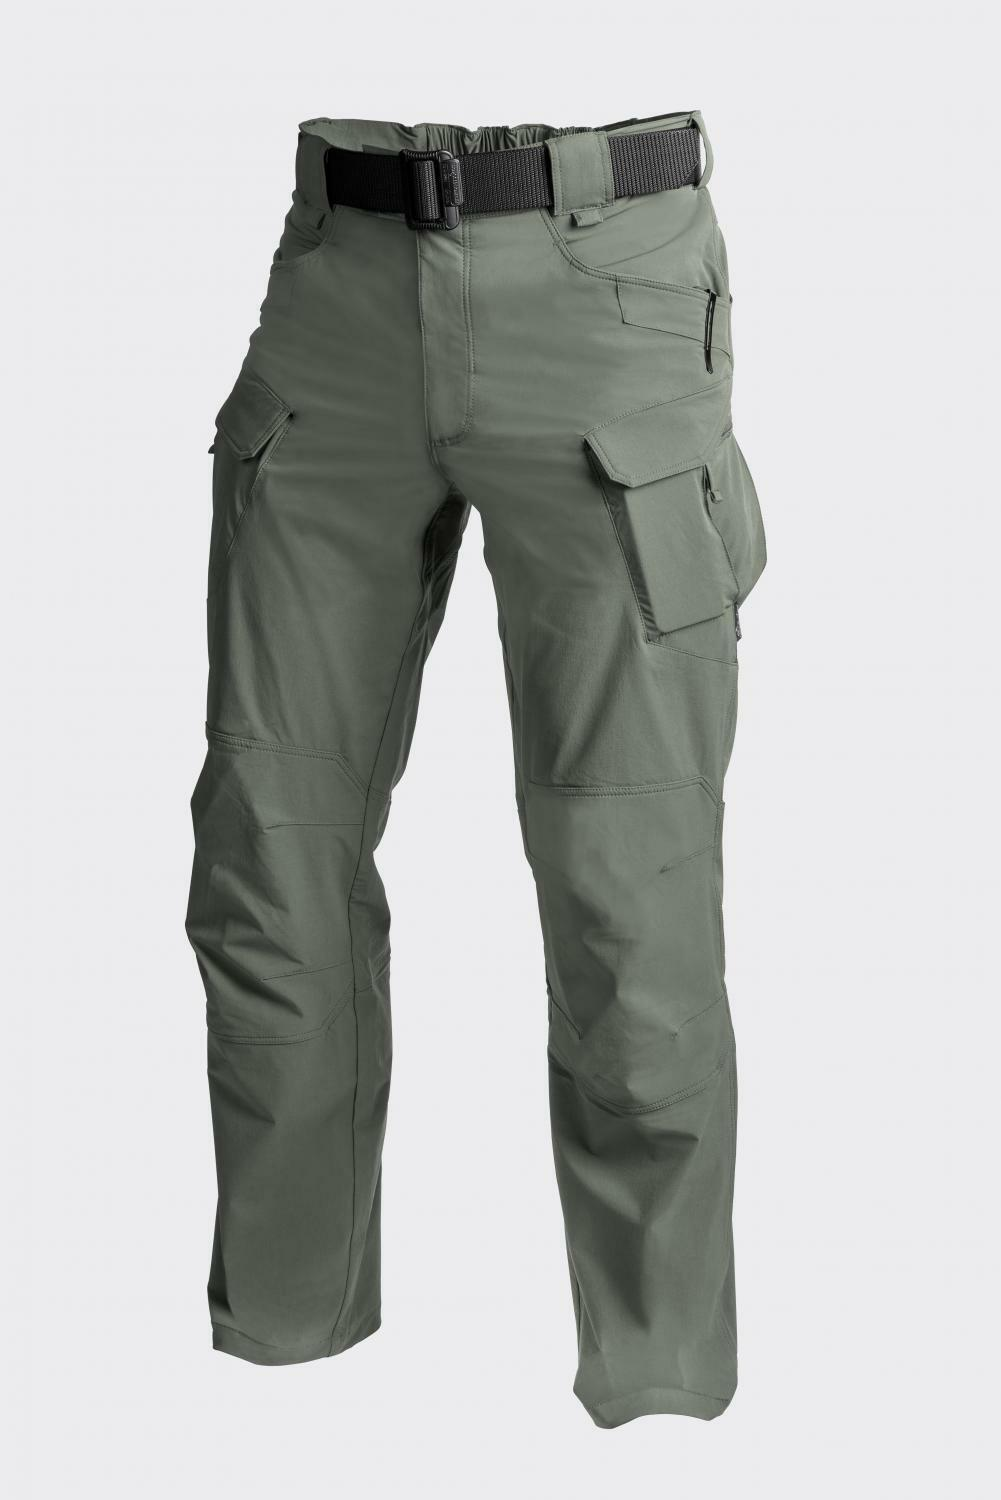 Helikon Tex OTP Tactical Outdoor Trekking Pants Trousers Olive MR Medium Regular